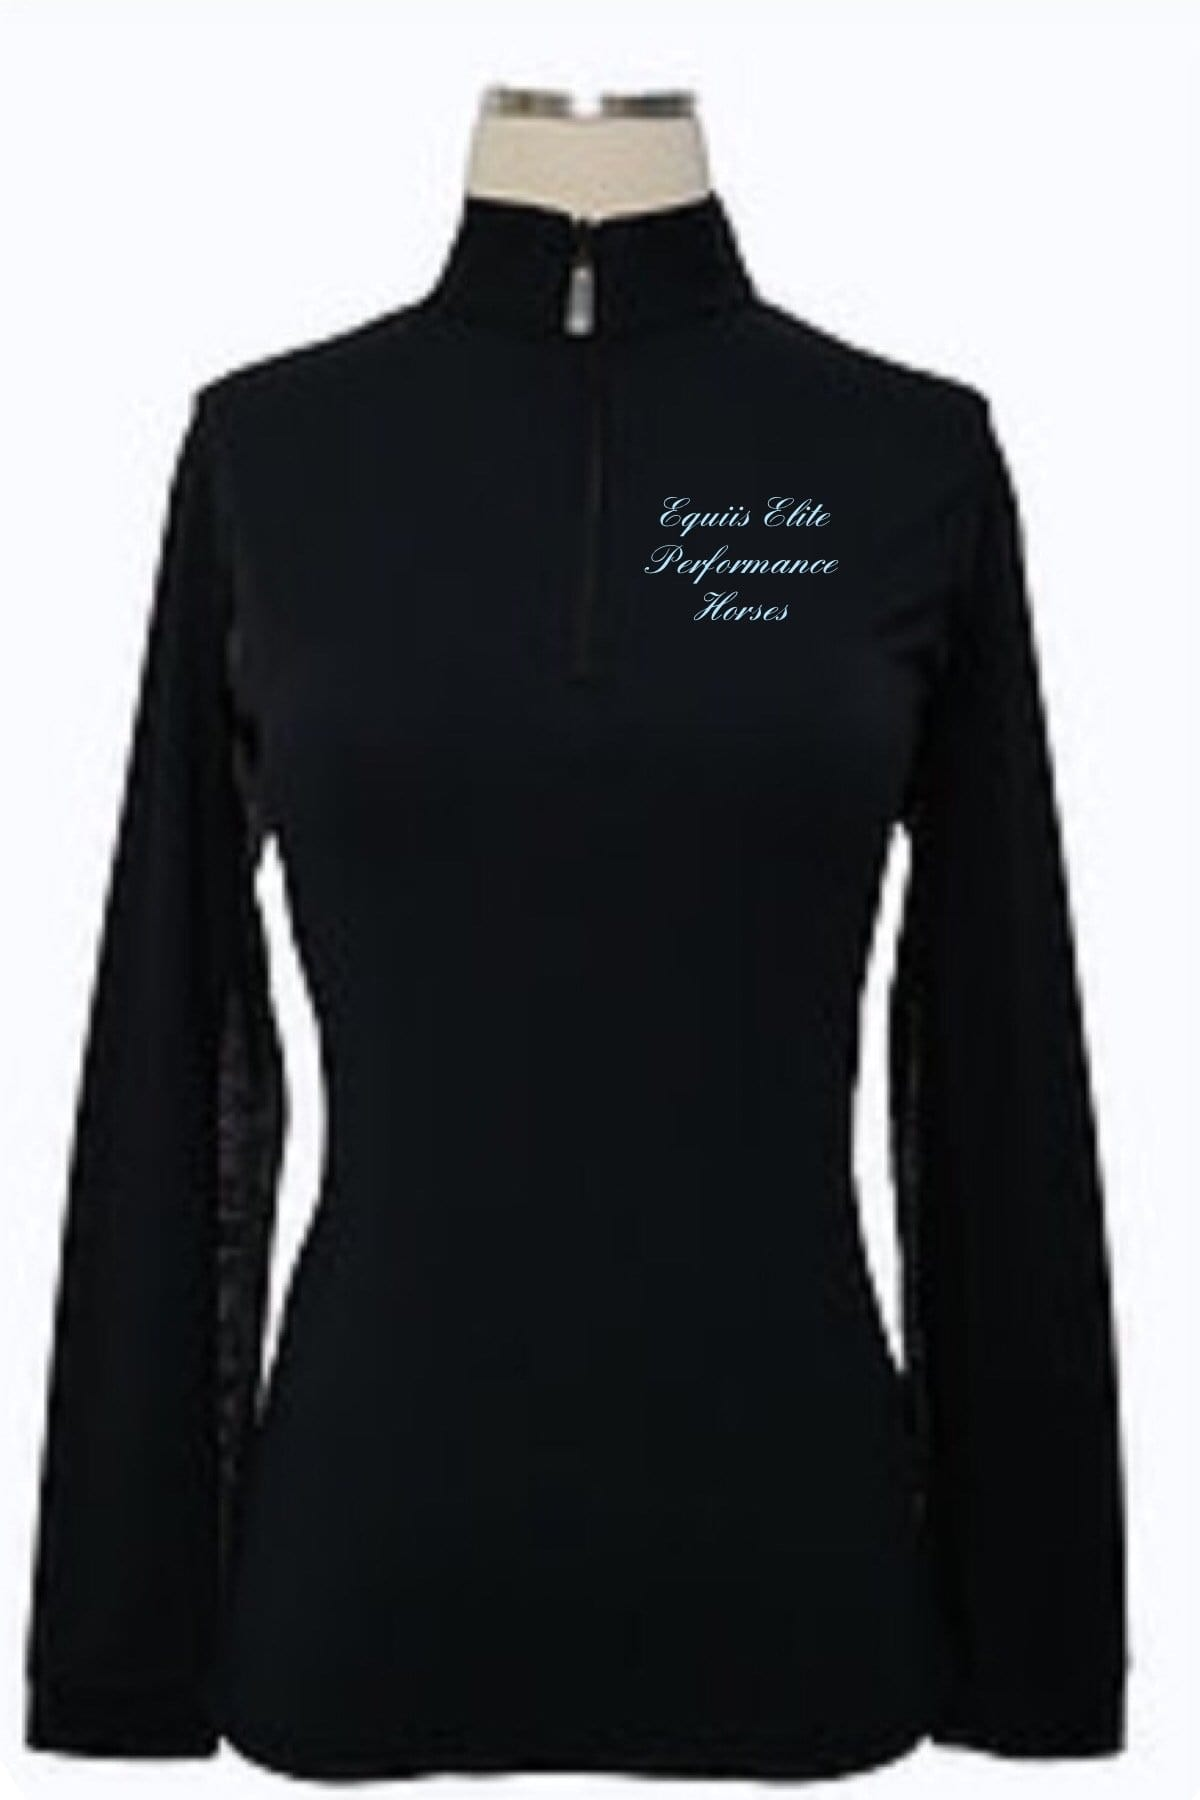 Equestrian Team Apparel Custom Team Shirts Youth Equiis Elite Performance Horses equestrian team apparel online tack store mobile tack store custom farm apparel custom show stable clothing equestrian lifestyle horse show clothing riding clothes horses equestrian tack store